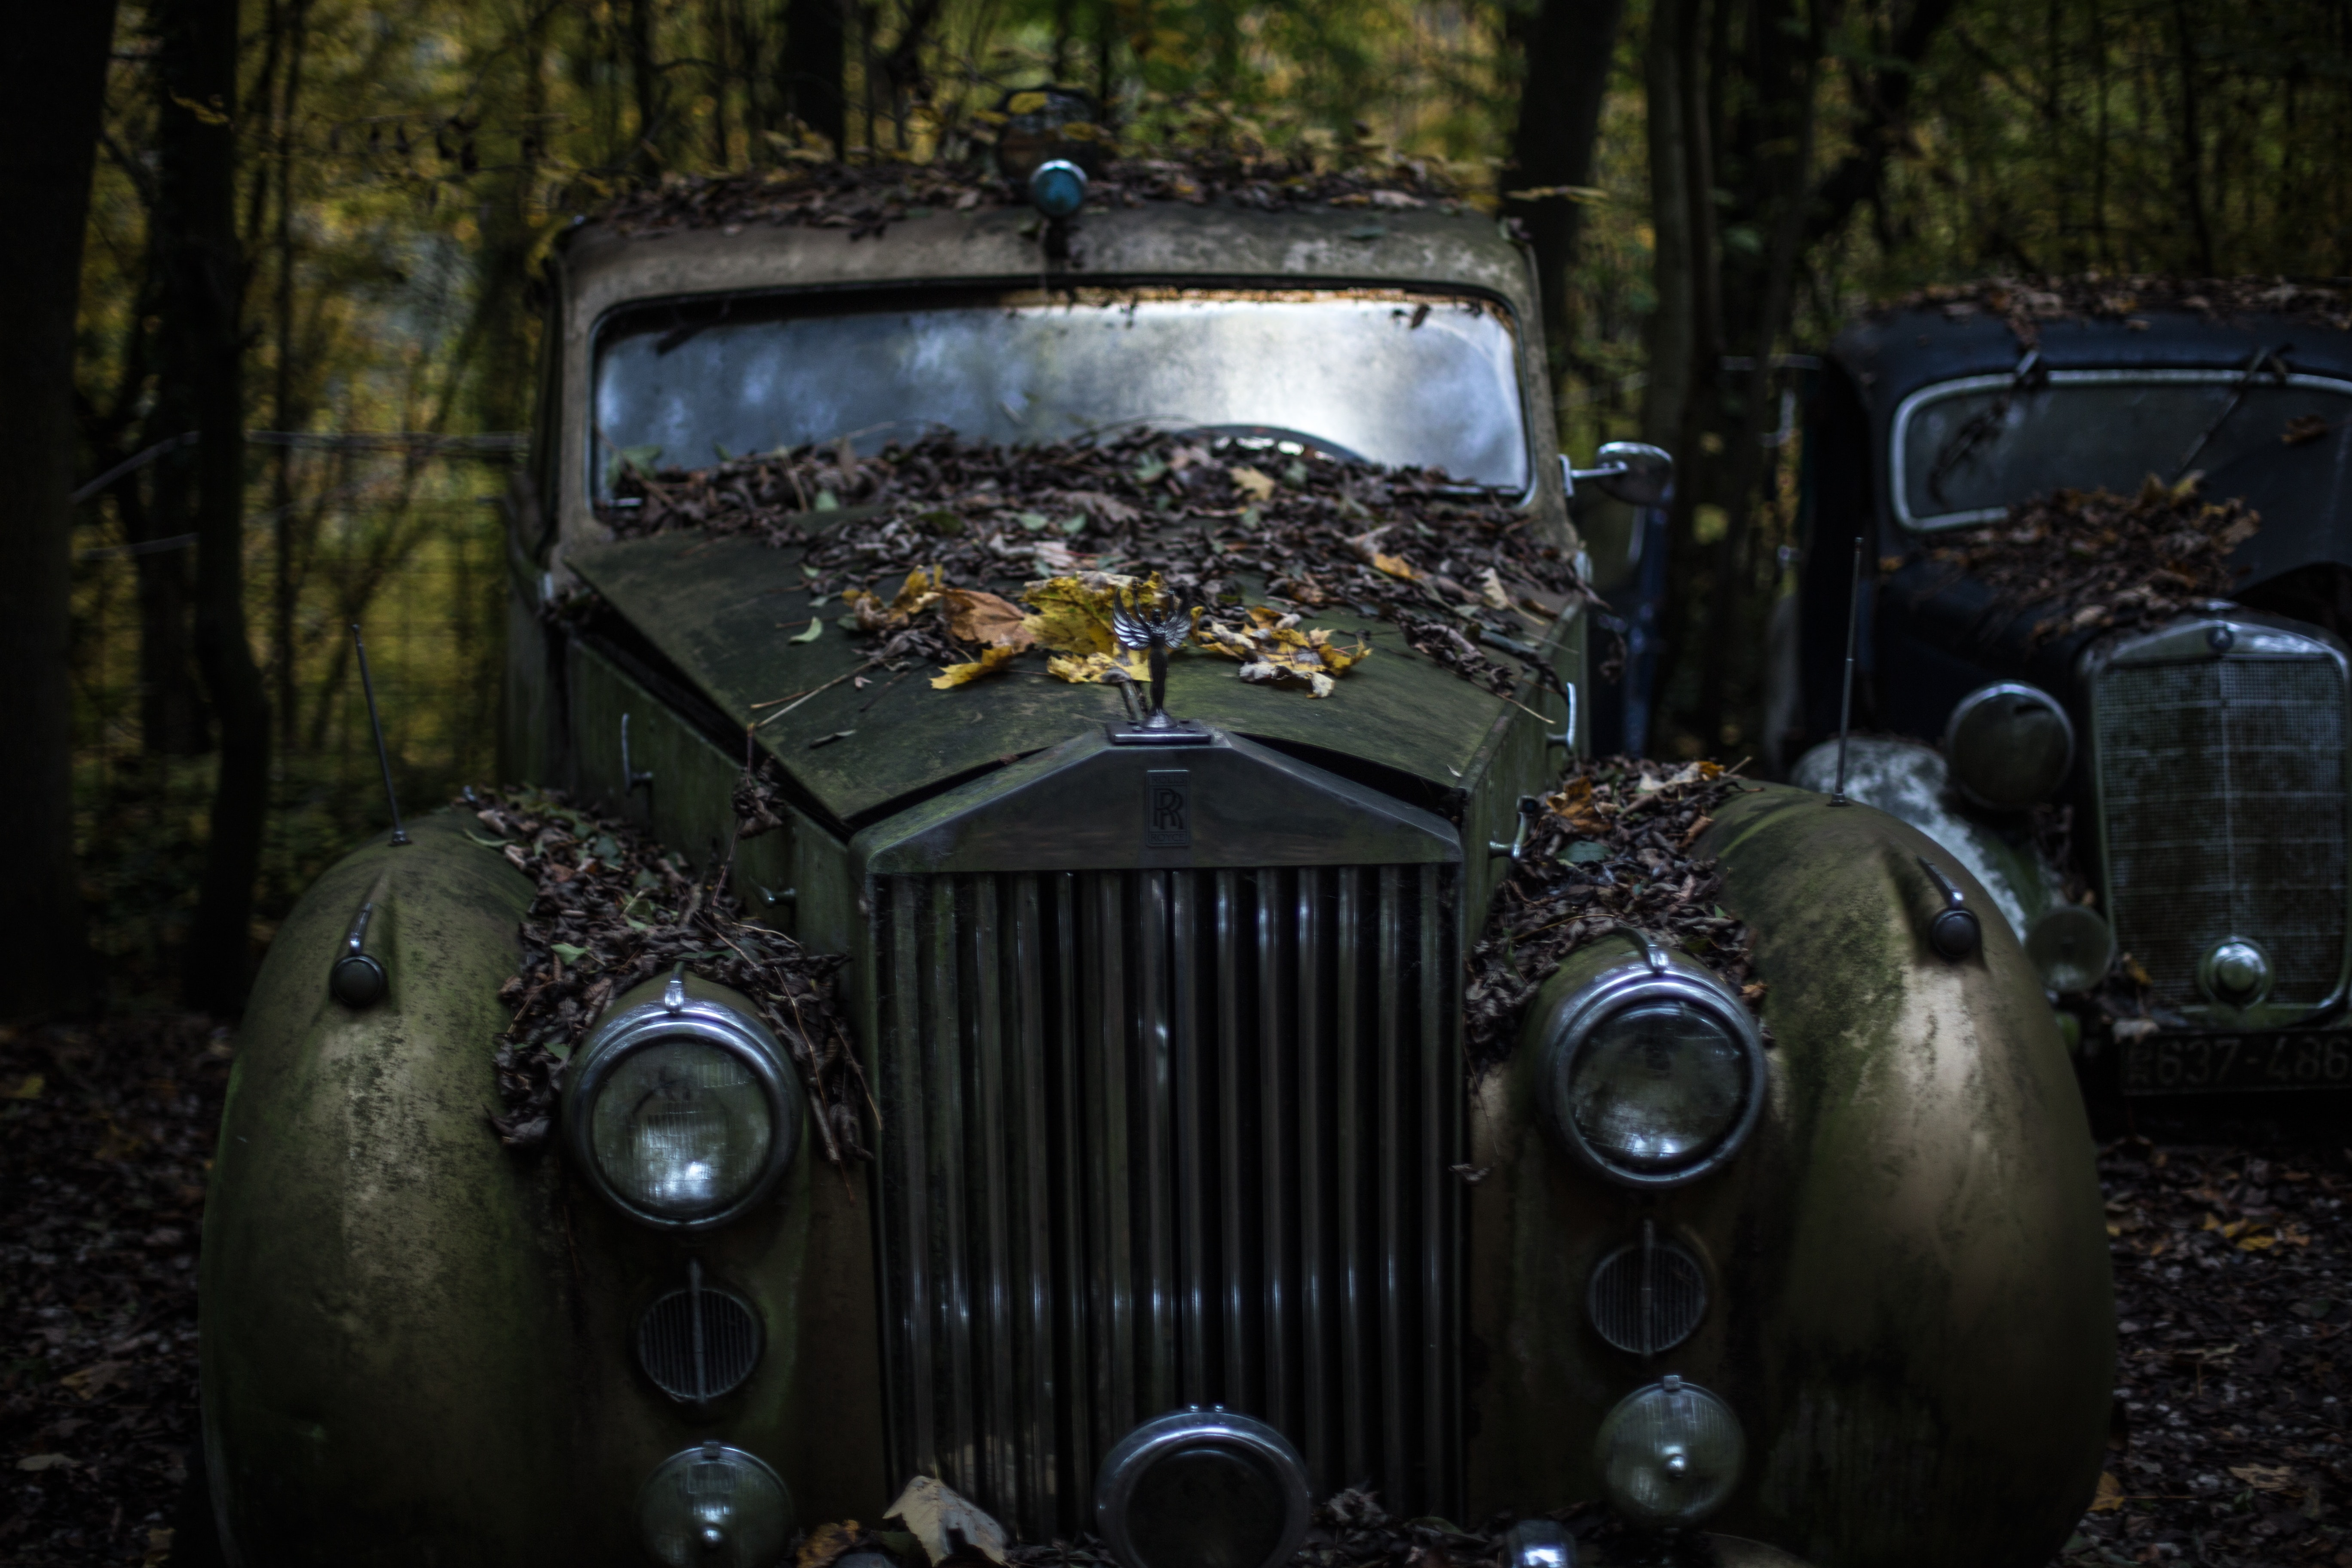 Green Classic Car in the Forest, Abandoned, Antique, Broken, Car, HQ Photo